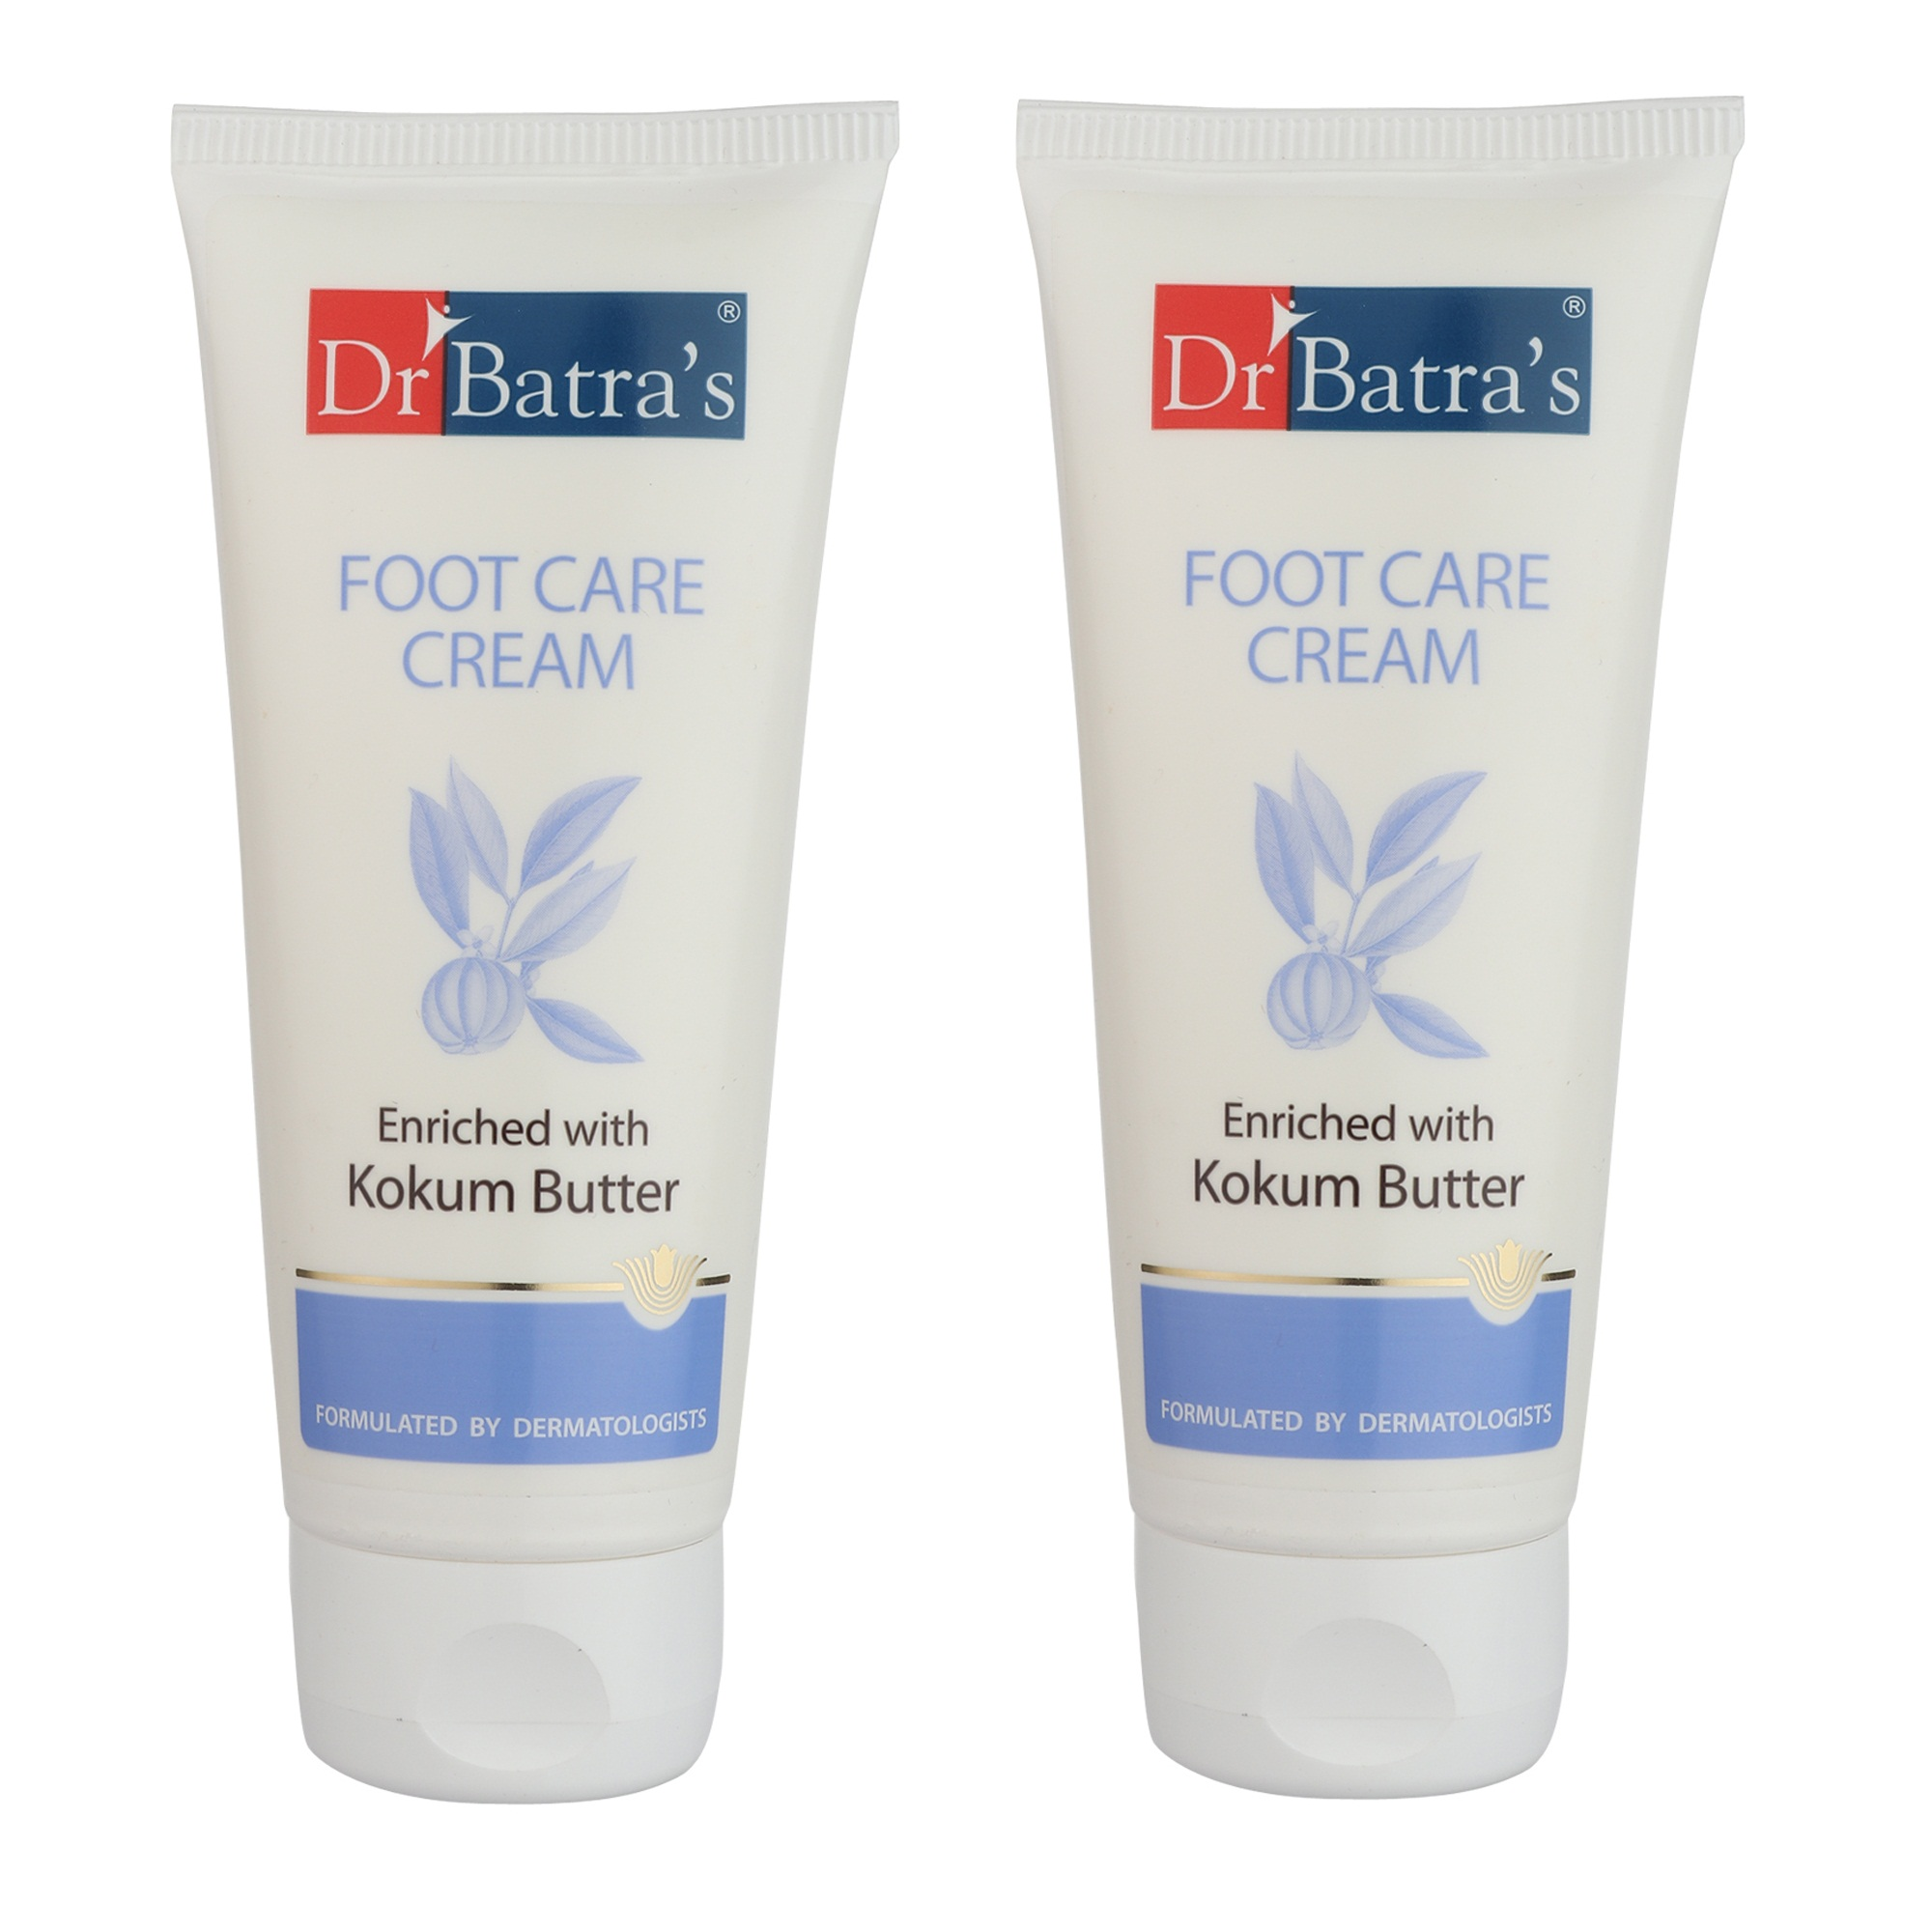 Dr Batra's | Dr Batra's Foot Care Cream Enriched With Kokum Butter - 100 gm (Pack of 2)